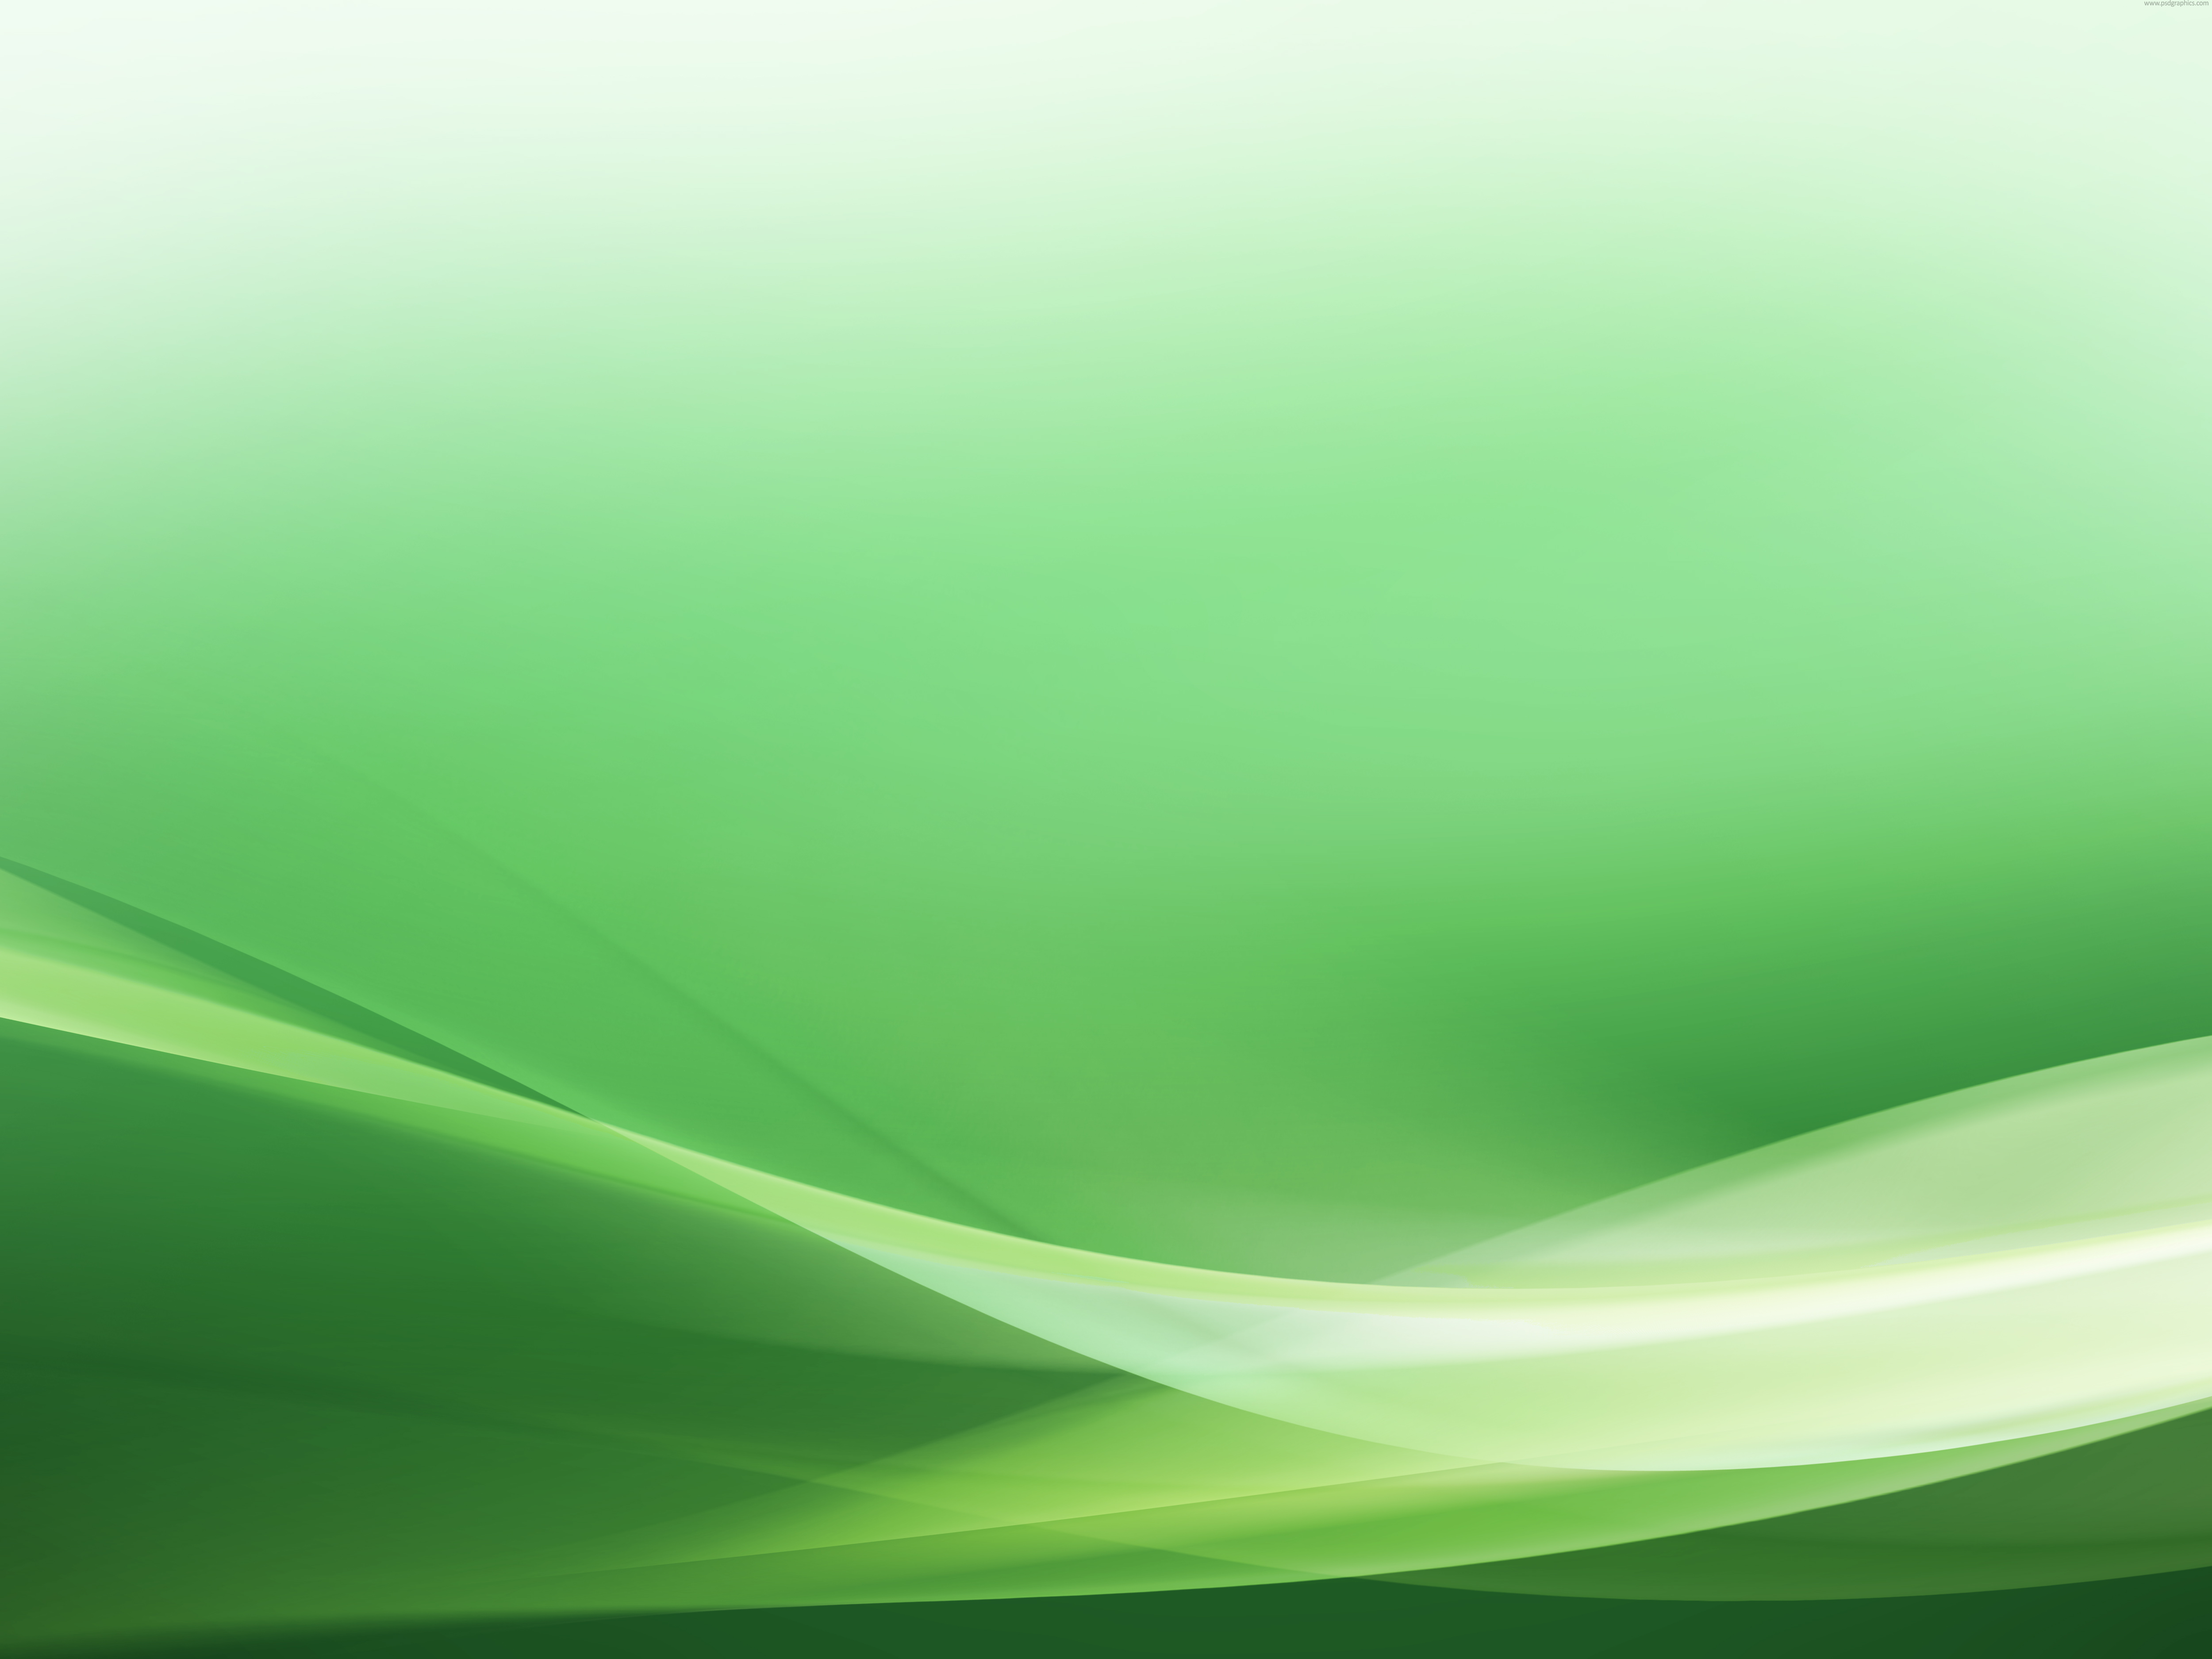 friendly green background blurry autumn design abstract green nature 5000x3750